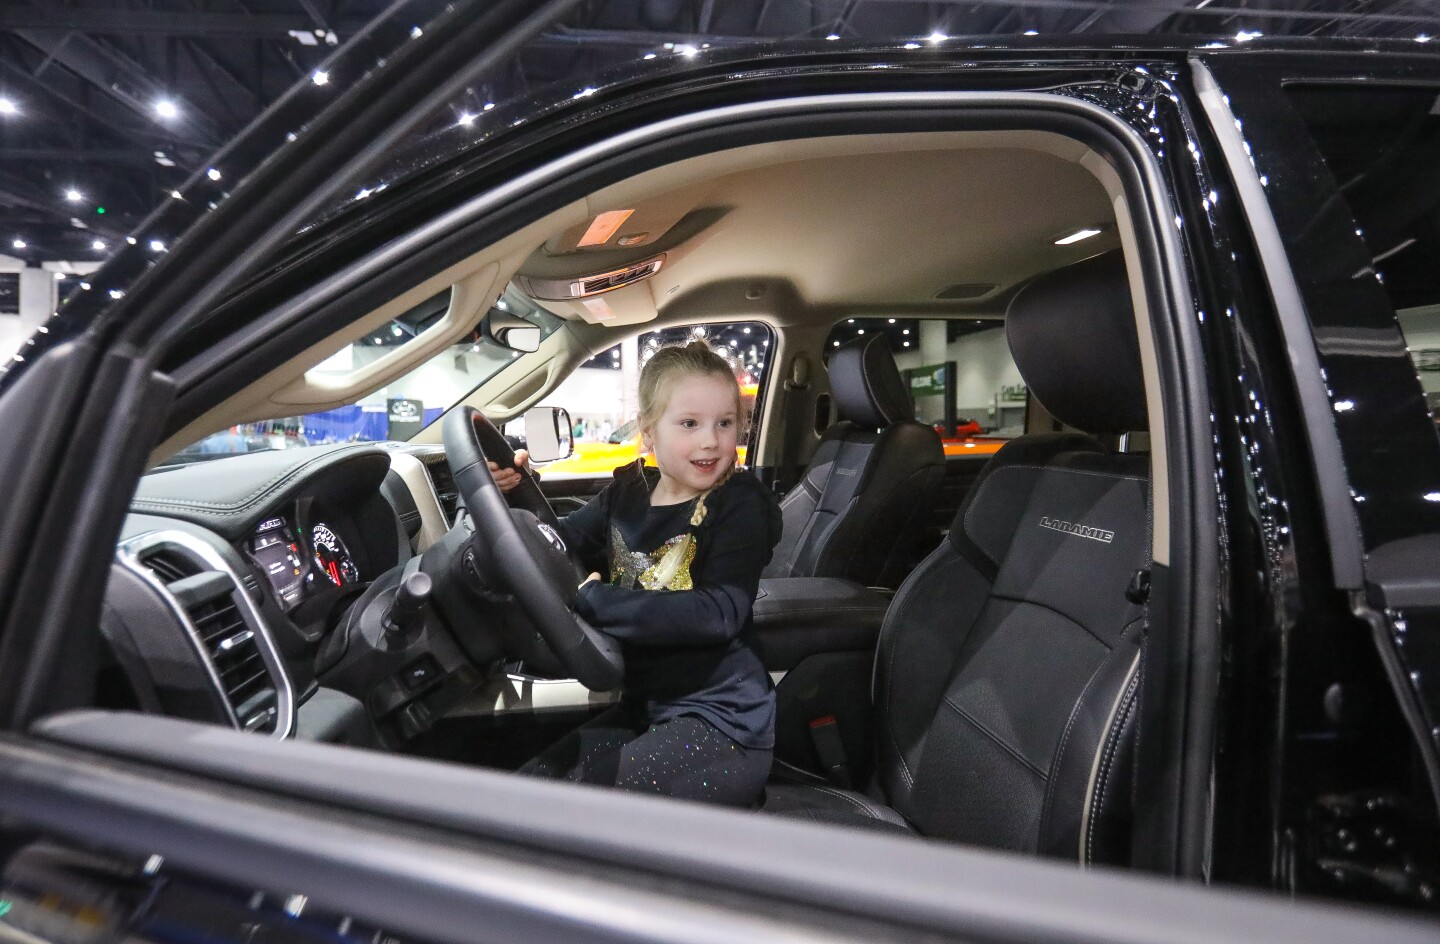 Brenley Trimpi, 5, from El Cajon, sits in the drivers seat of a 2020 Ram 1500 Bighorn Crew Cab 4x4 pickup truck during the 2020 San Diego International Auto Show, January 4, 2020 at the San Diego Convention Center.